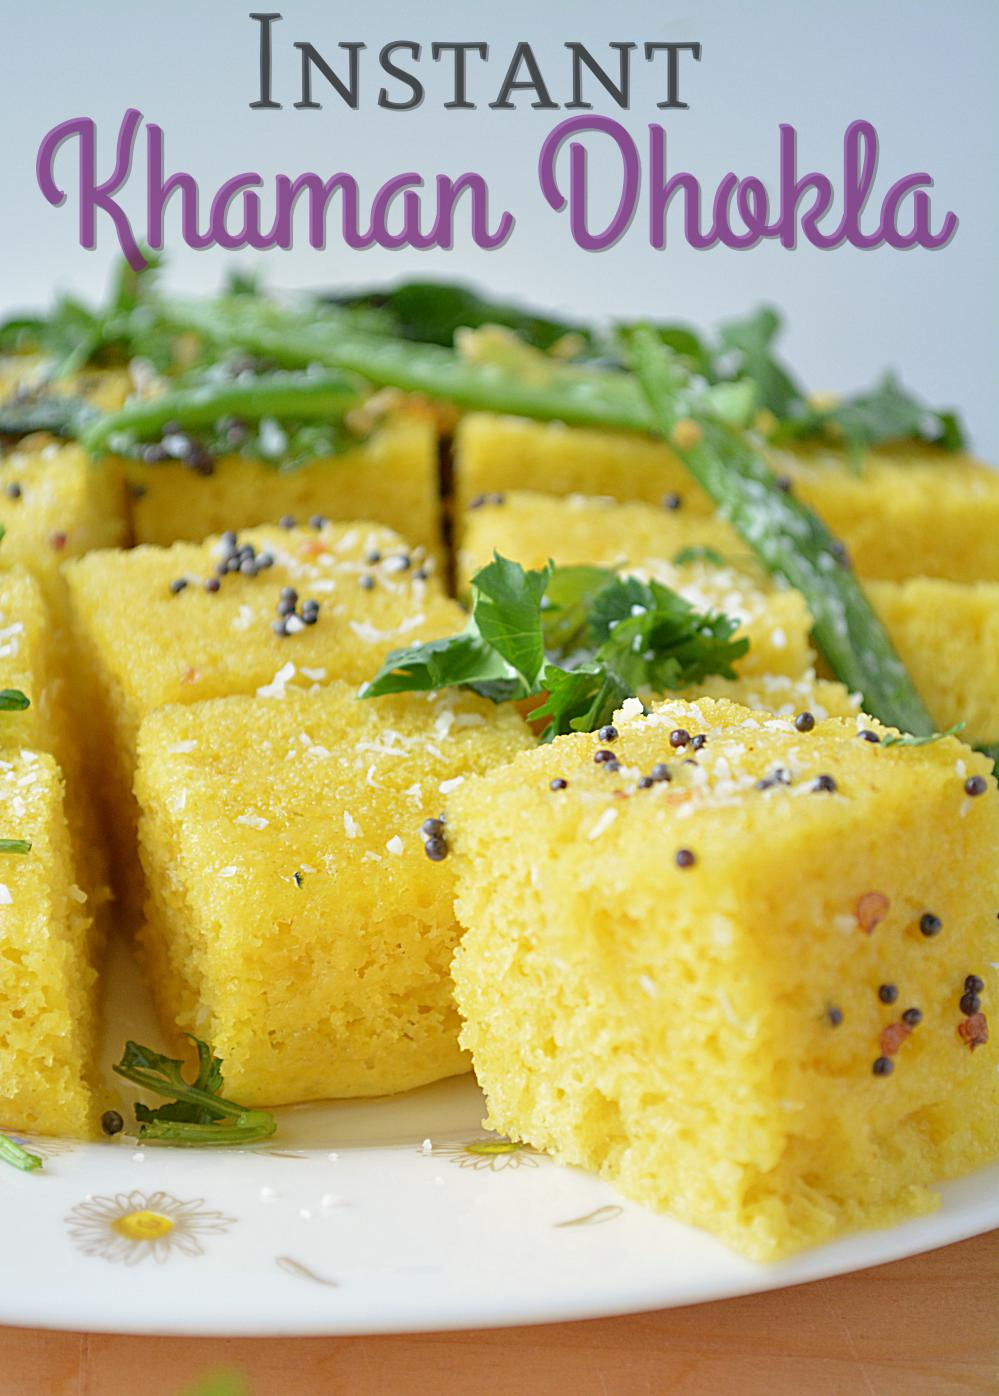 Fail proof instant khaman dhokla recipe dhokla with step by step like fluffy dhokla pieces forumfinder Images